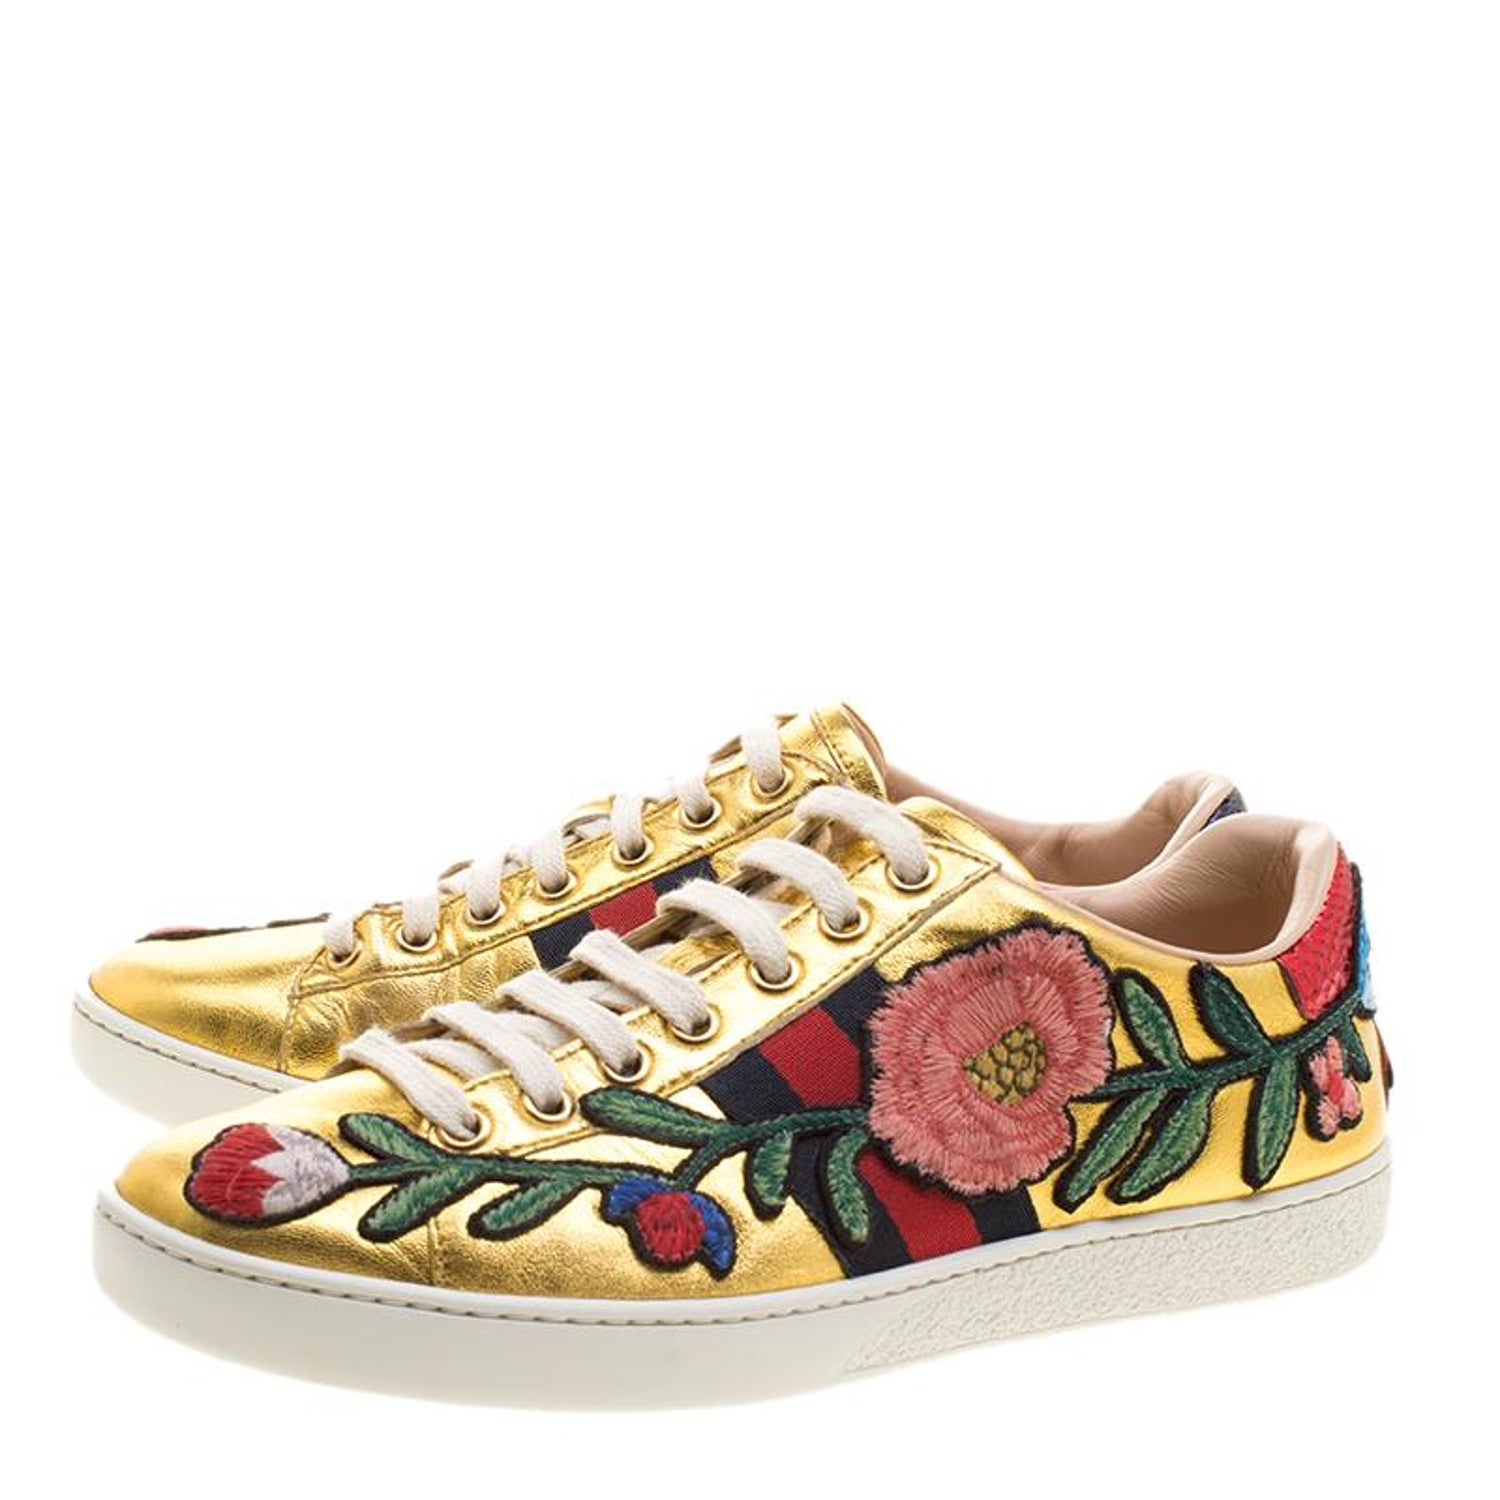 a9c394f09 Gucci Gold Leather Ace Embroidered Low Top Sneakers Size 36.5 at 1stdibs